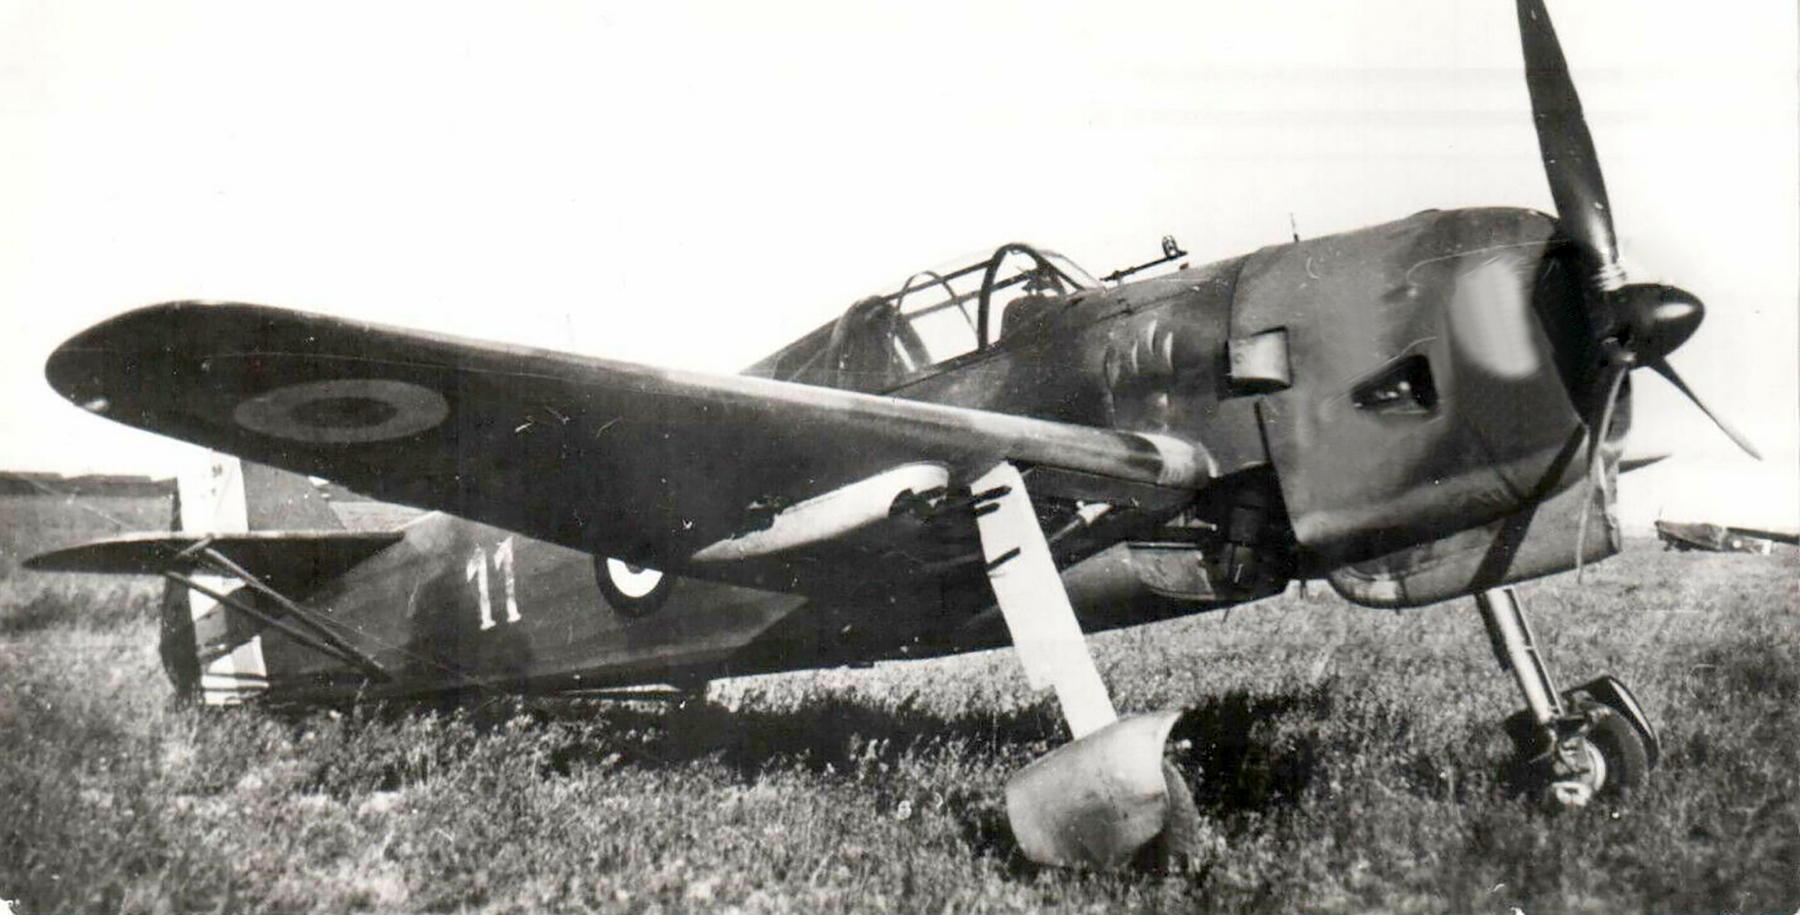 French Airforce Bloch MB 155 White 11 powered by Gnome Rhone 14N 49 engine France 1940 01